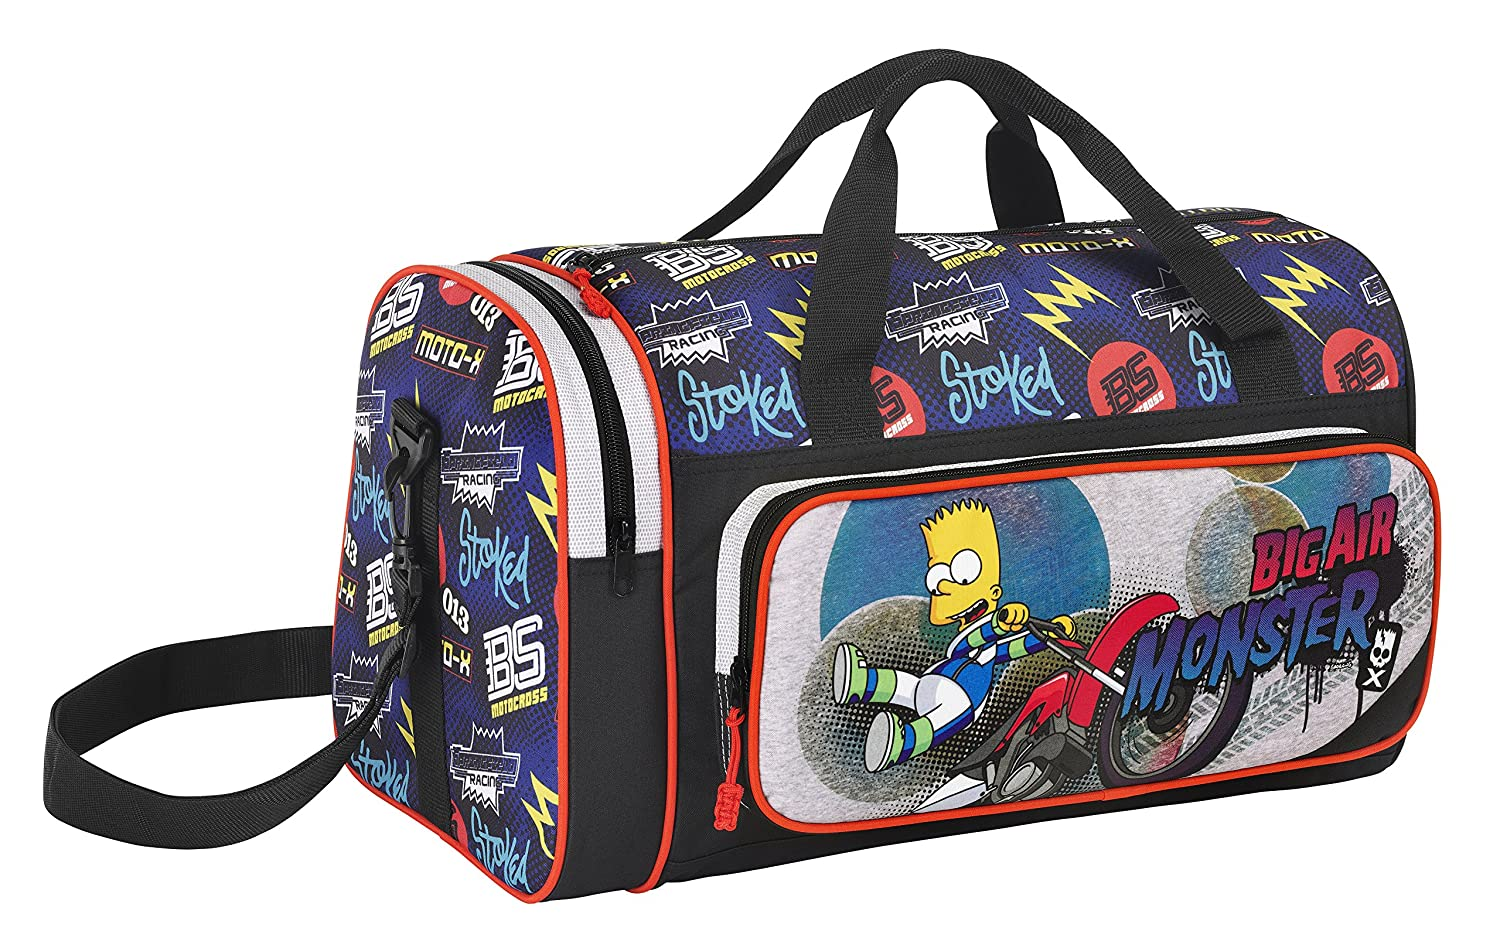 The Simpsons - Bolsa de deporte/viaje, 47 x 26 x 27 cm (Safta 711505023)https://amzn.to/2TEWZVQ